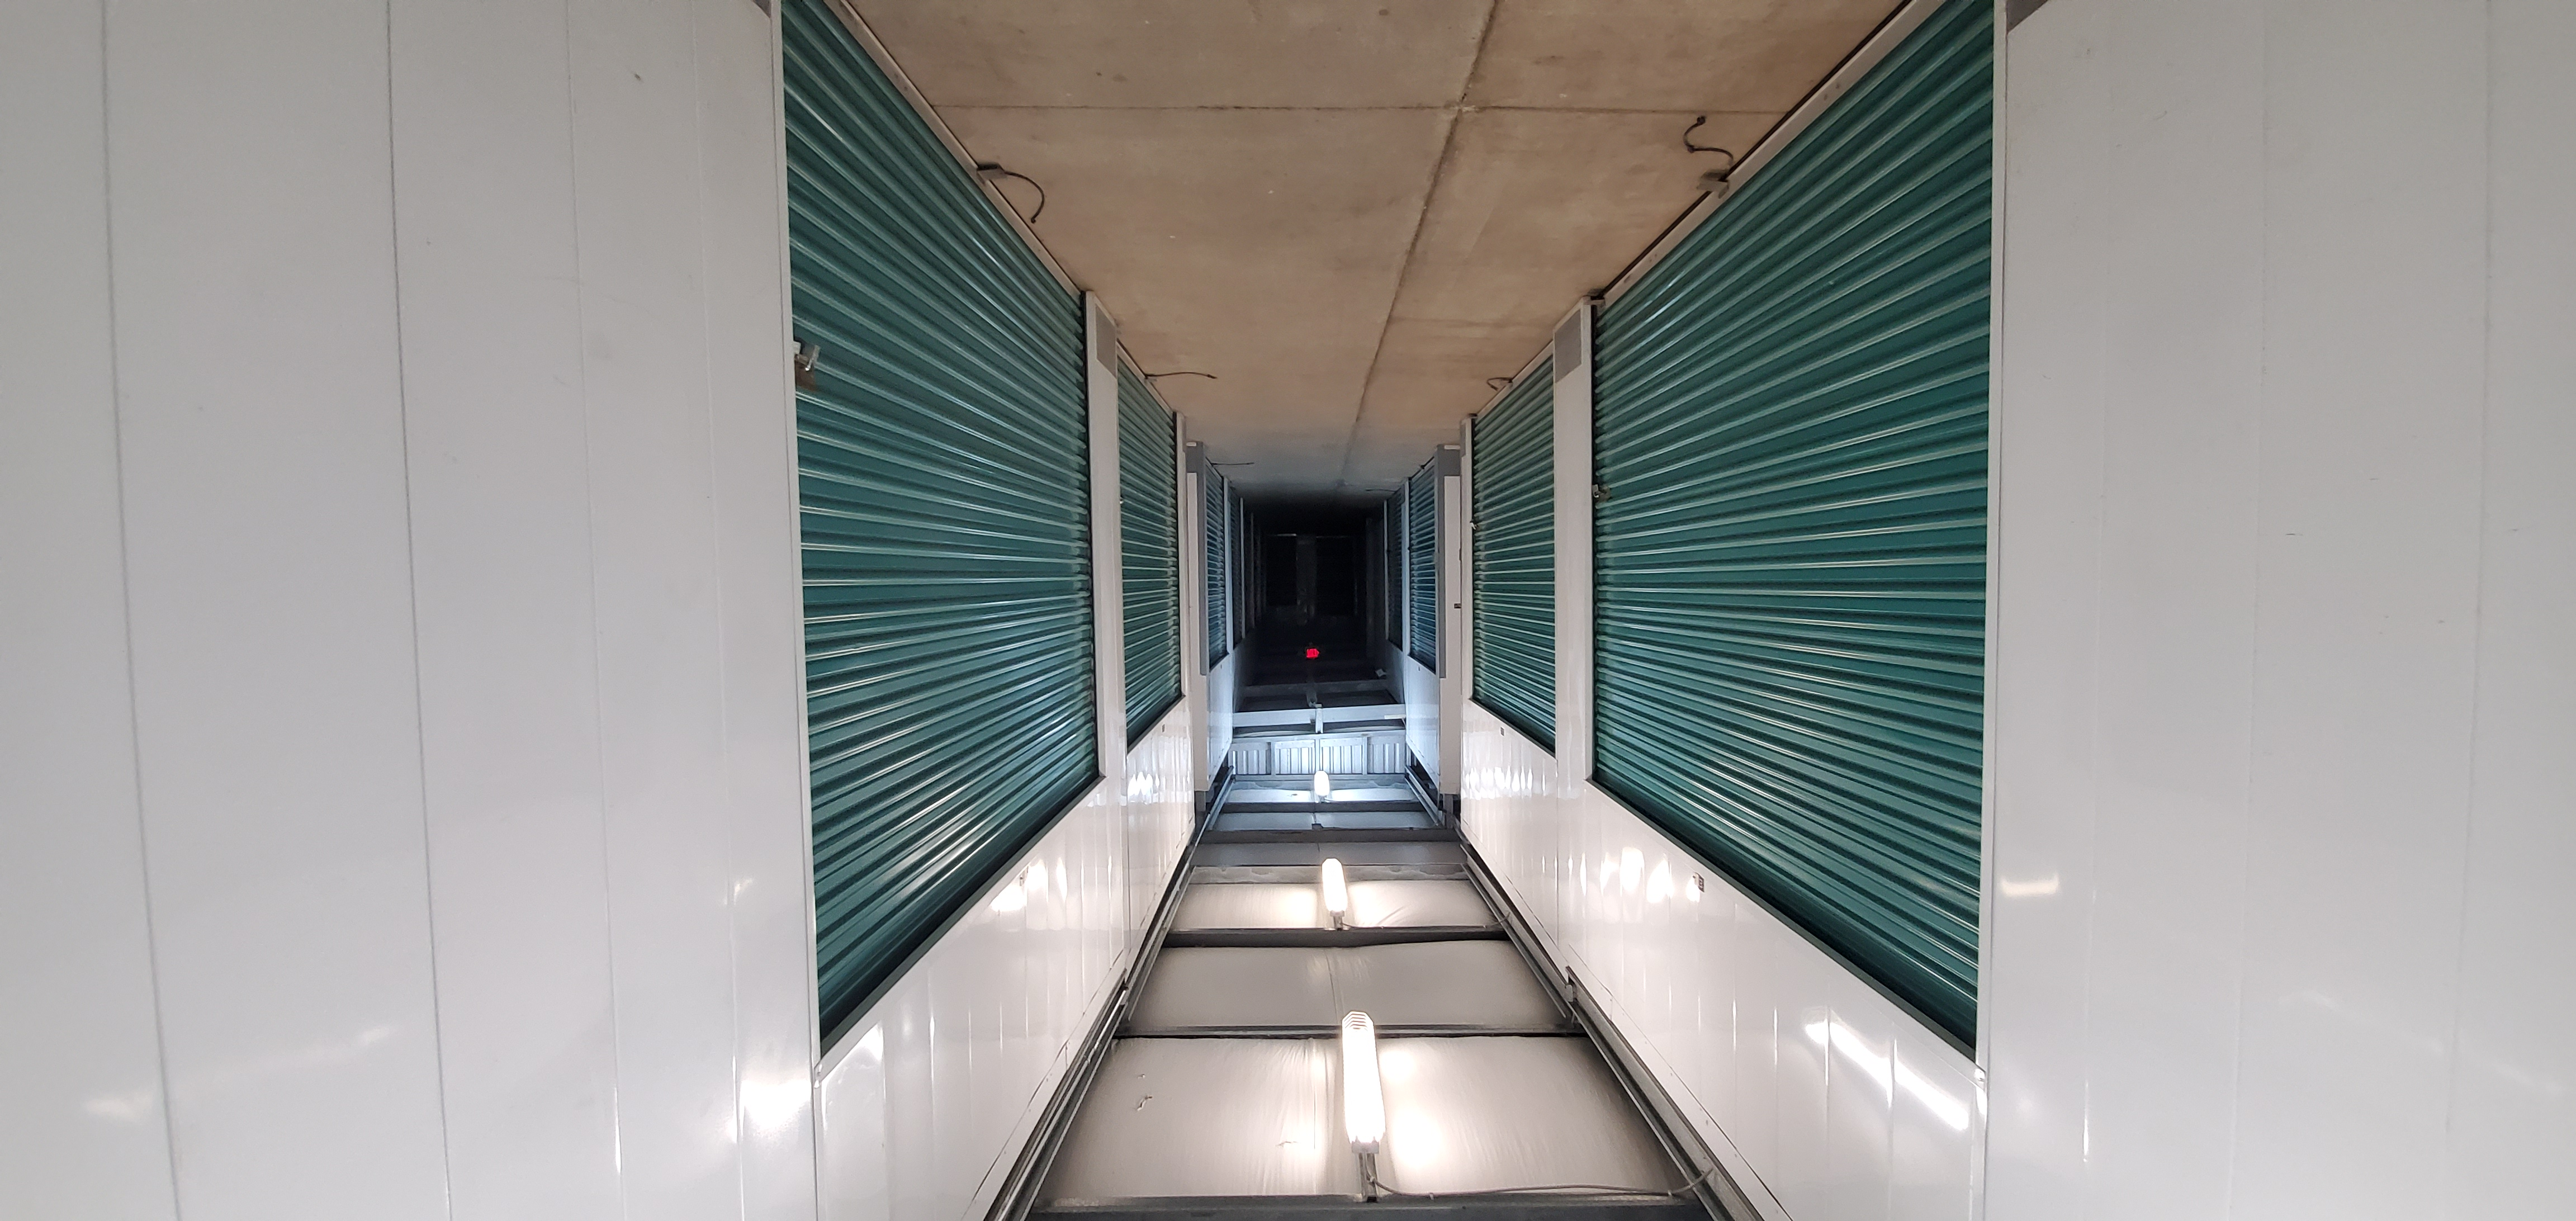 Hallway with interior storage units on both sides